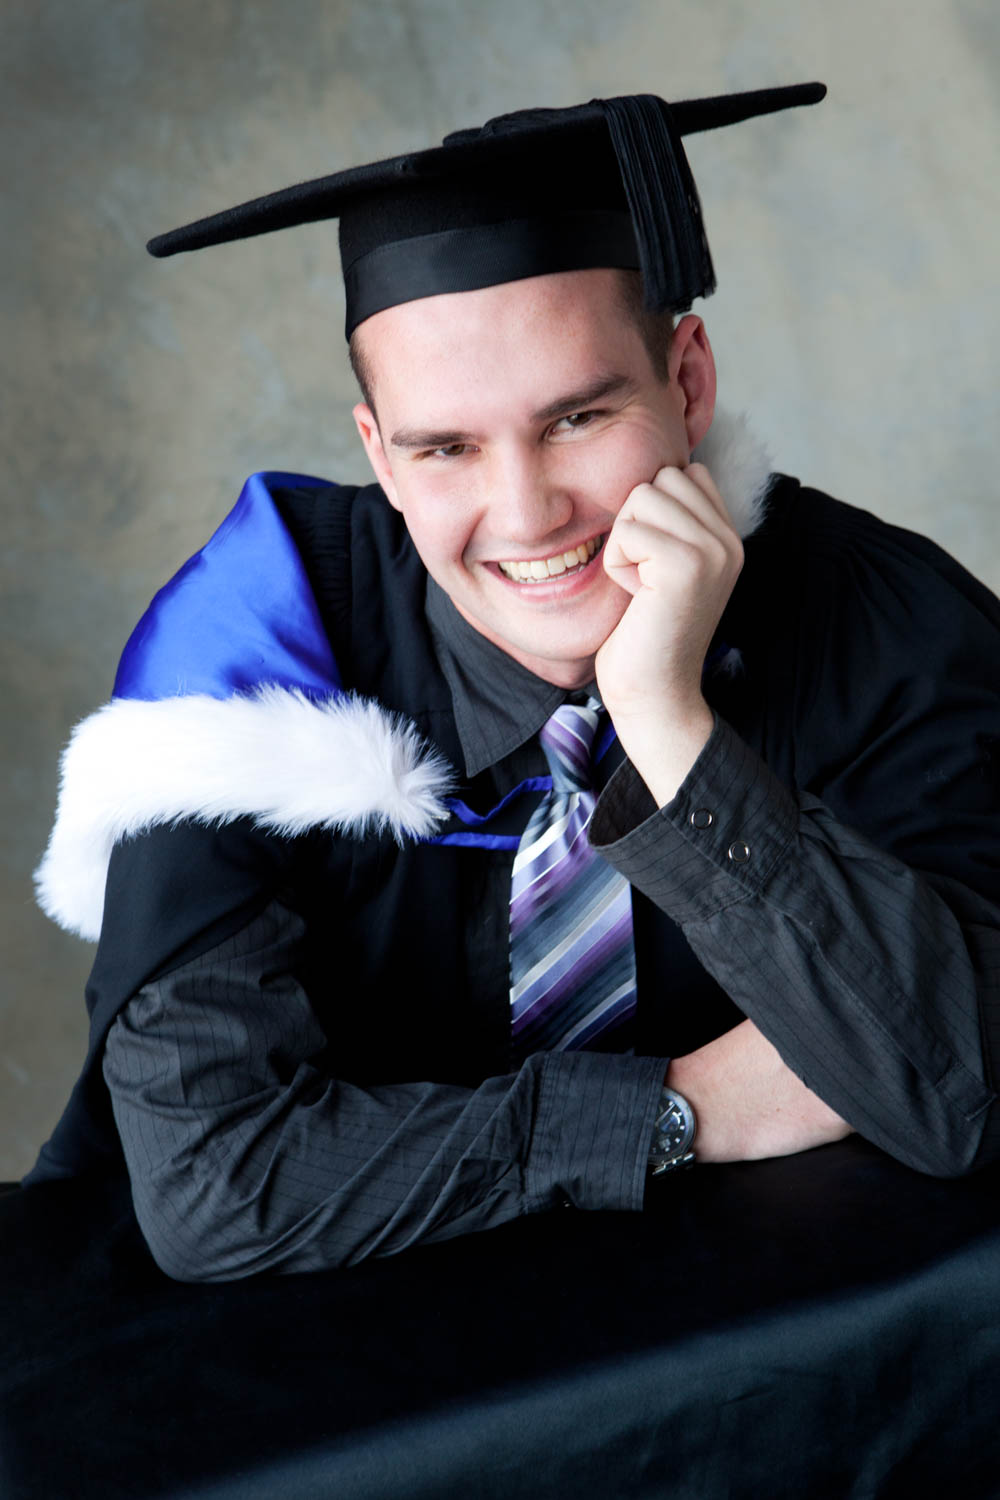 Graduation_Photographer_Auckland_17873_7043.jpg